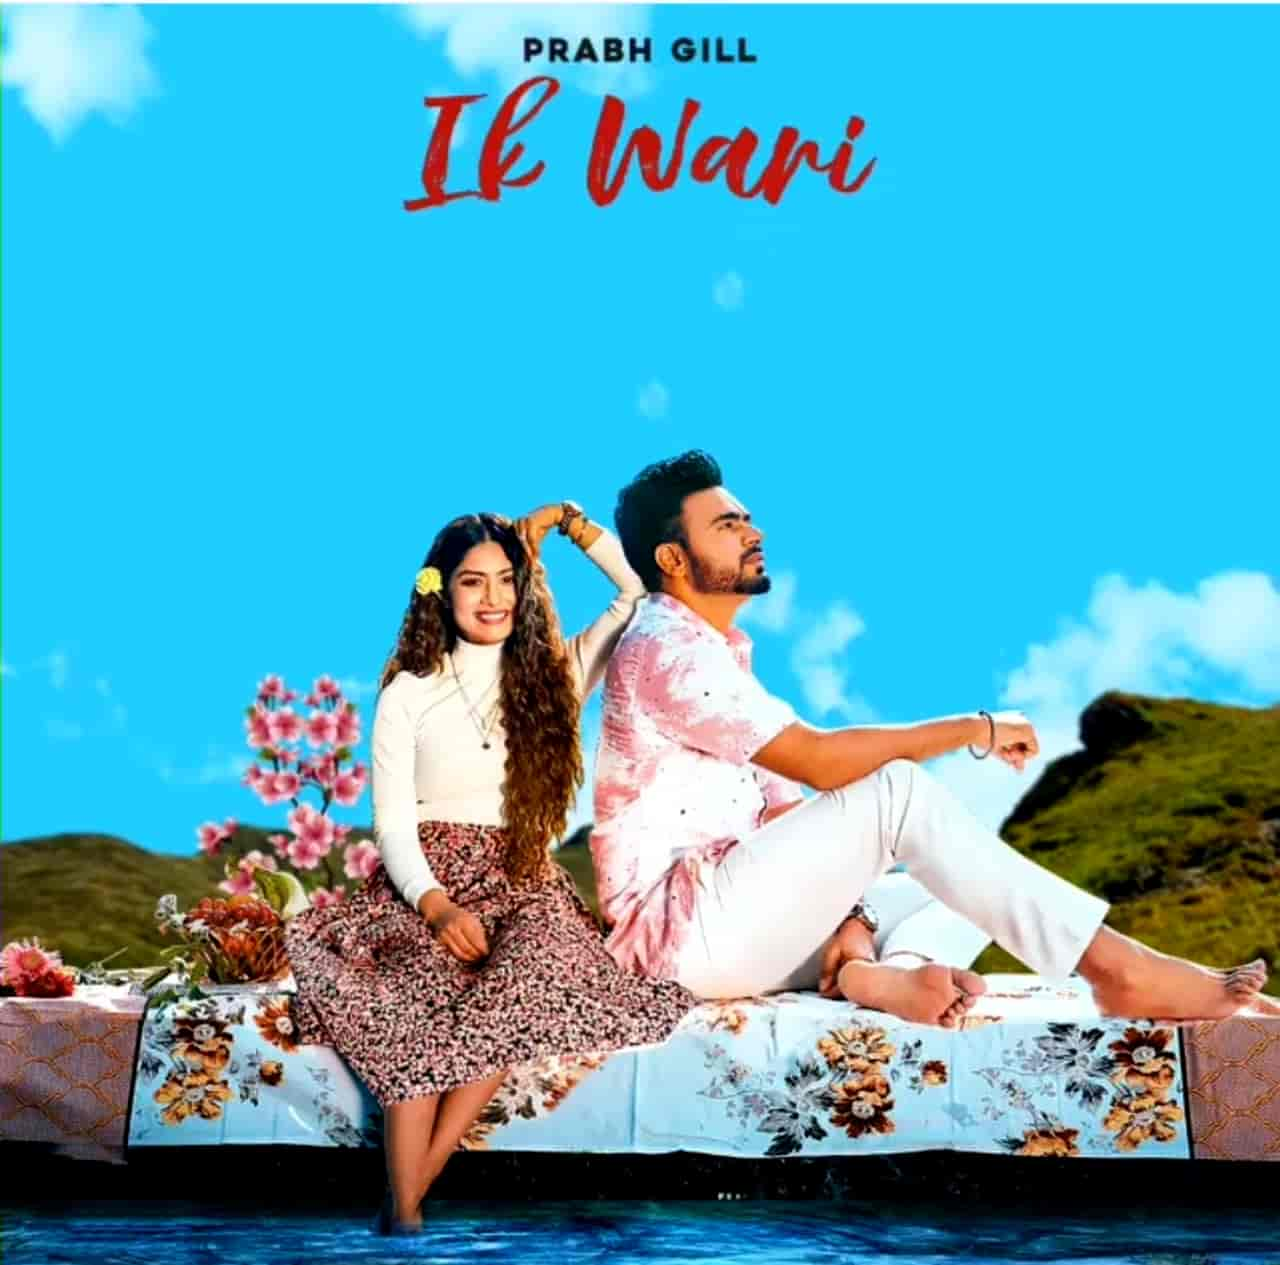 Ik Waari Punjabi Song Image Features Prabh Gill And Krishna Mukherjee